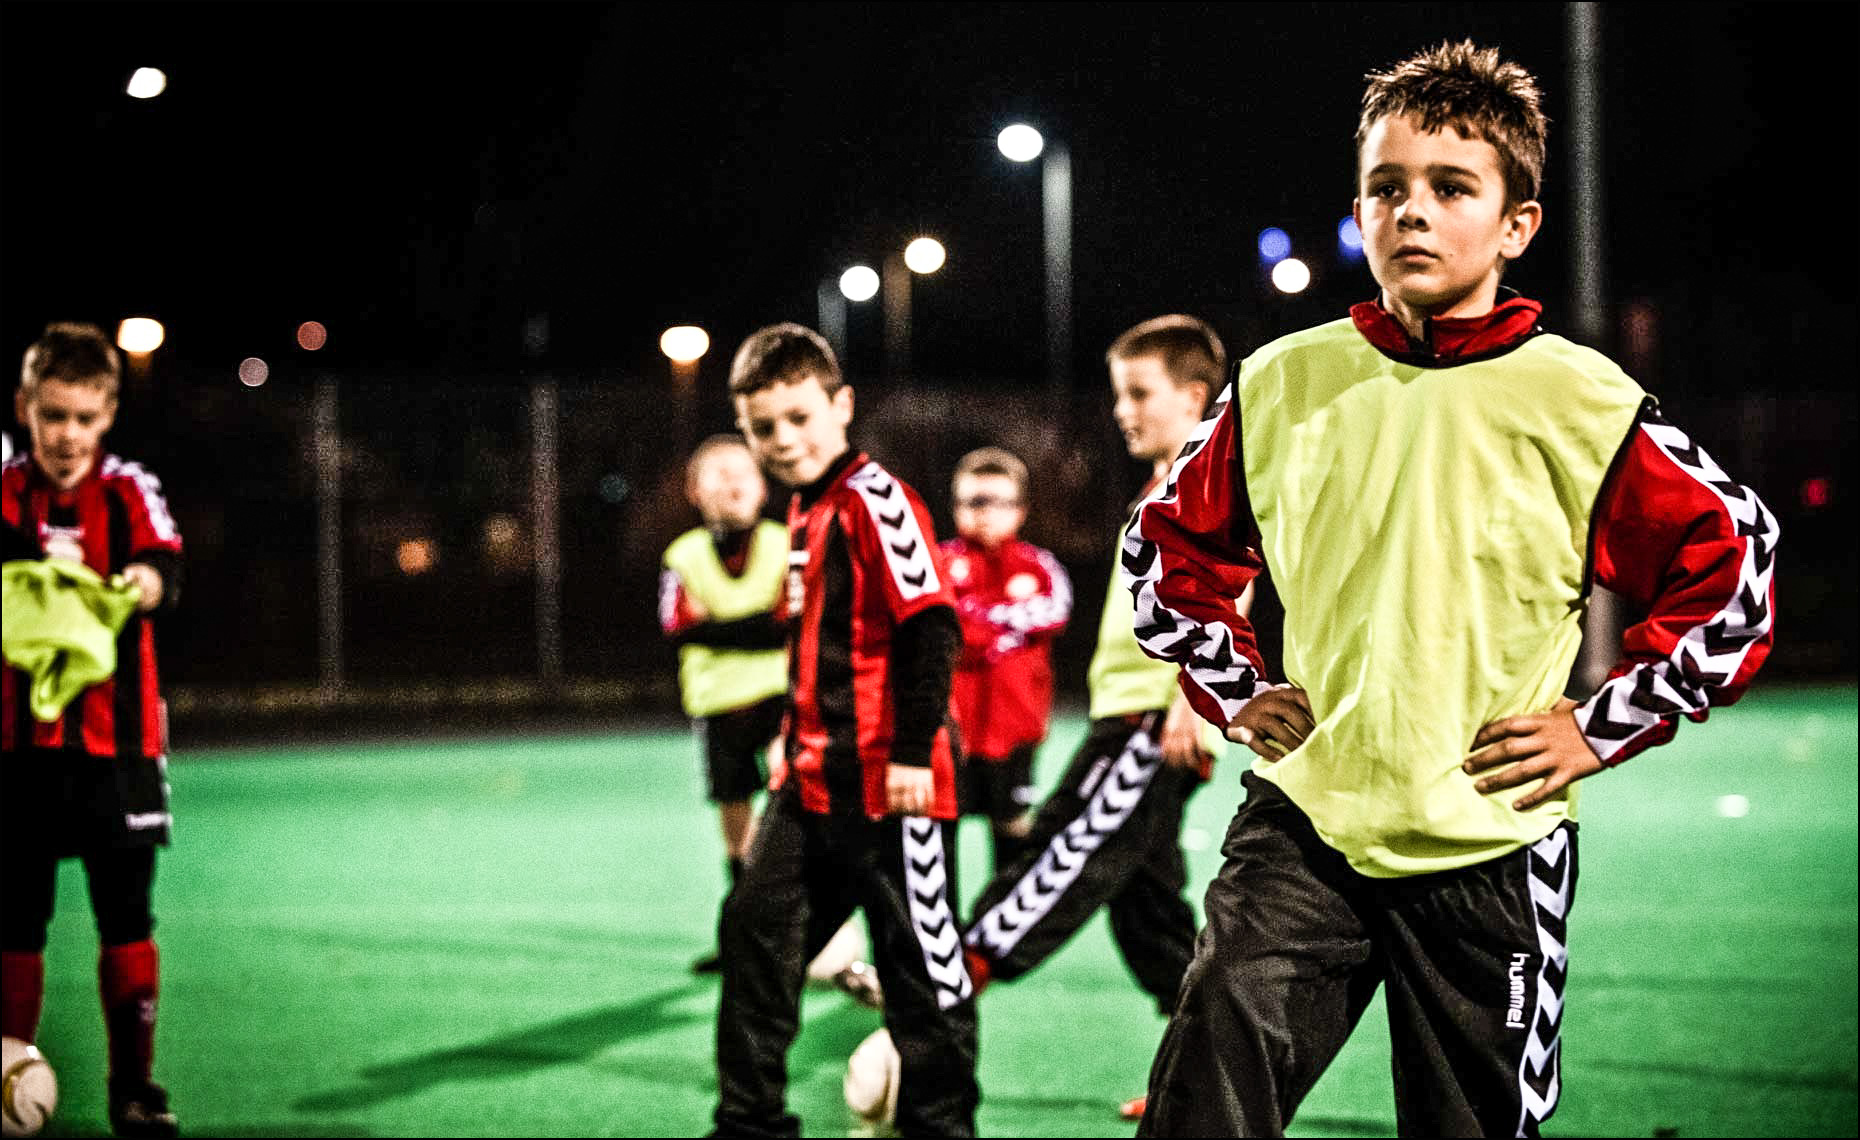 45 youth soccer football charity Scotland  ©Paul Hampton Photographer Glasgow